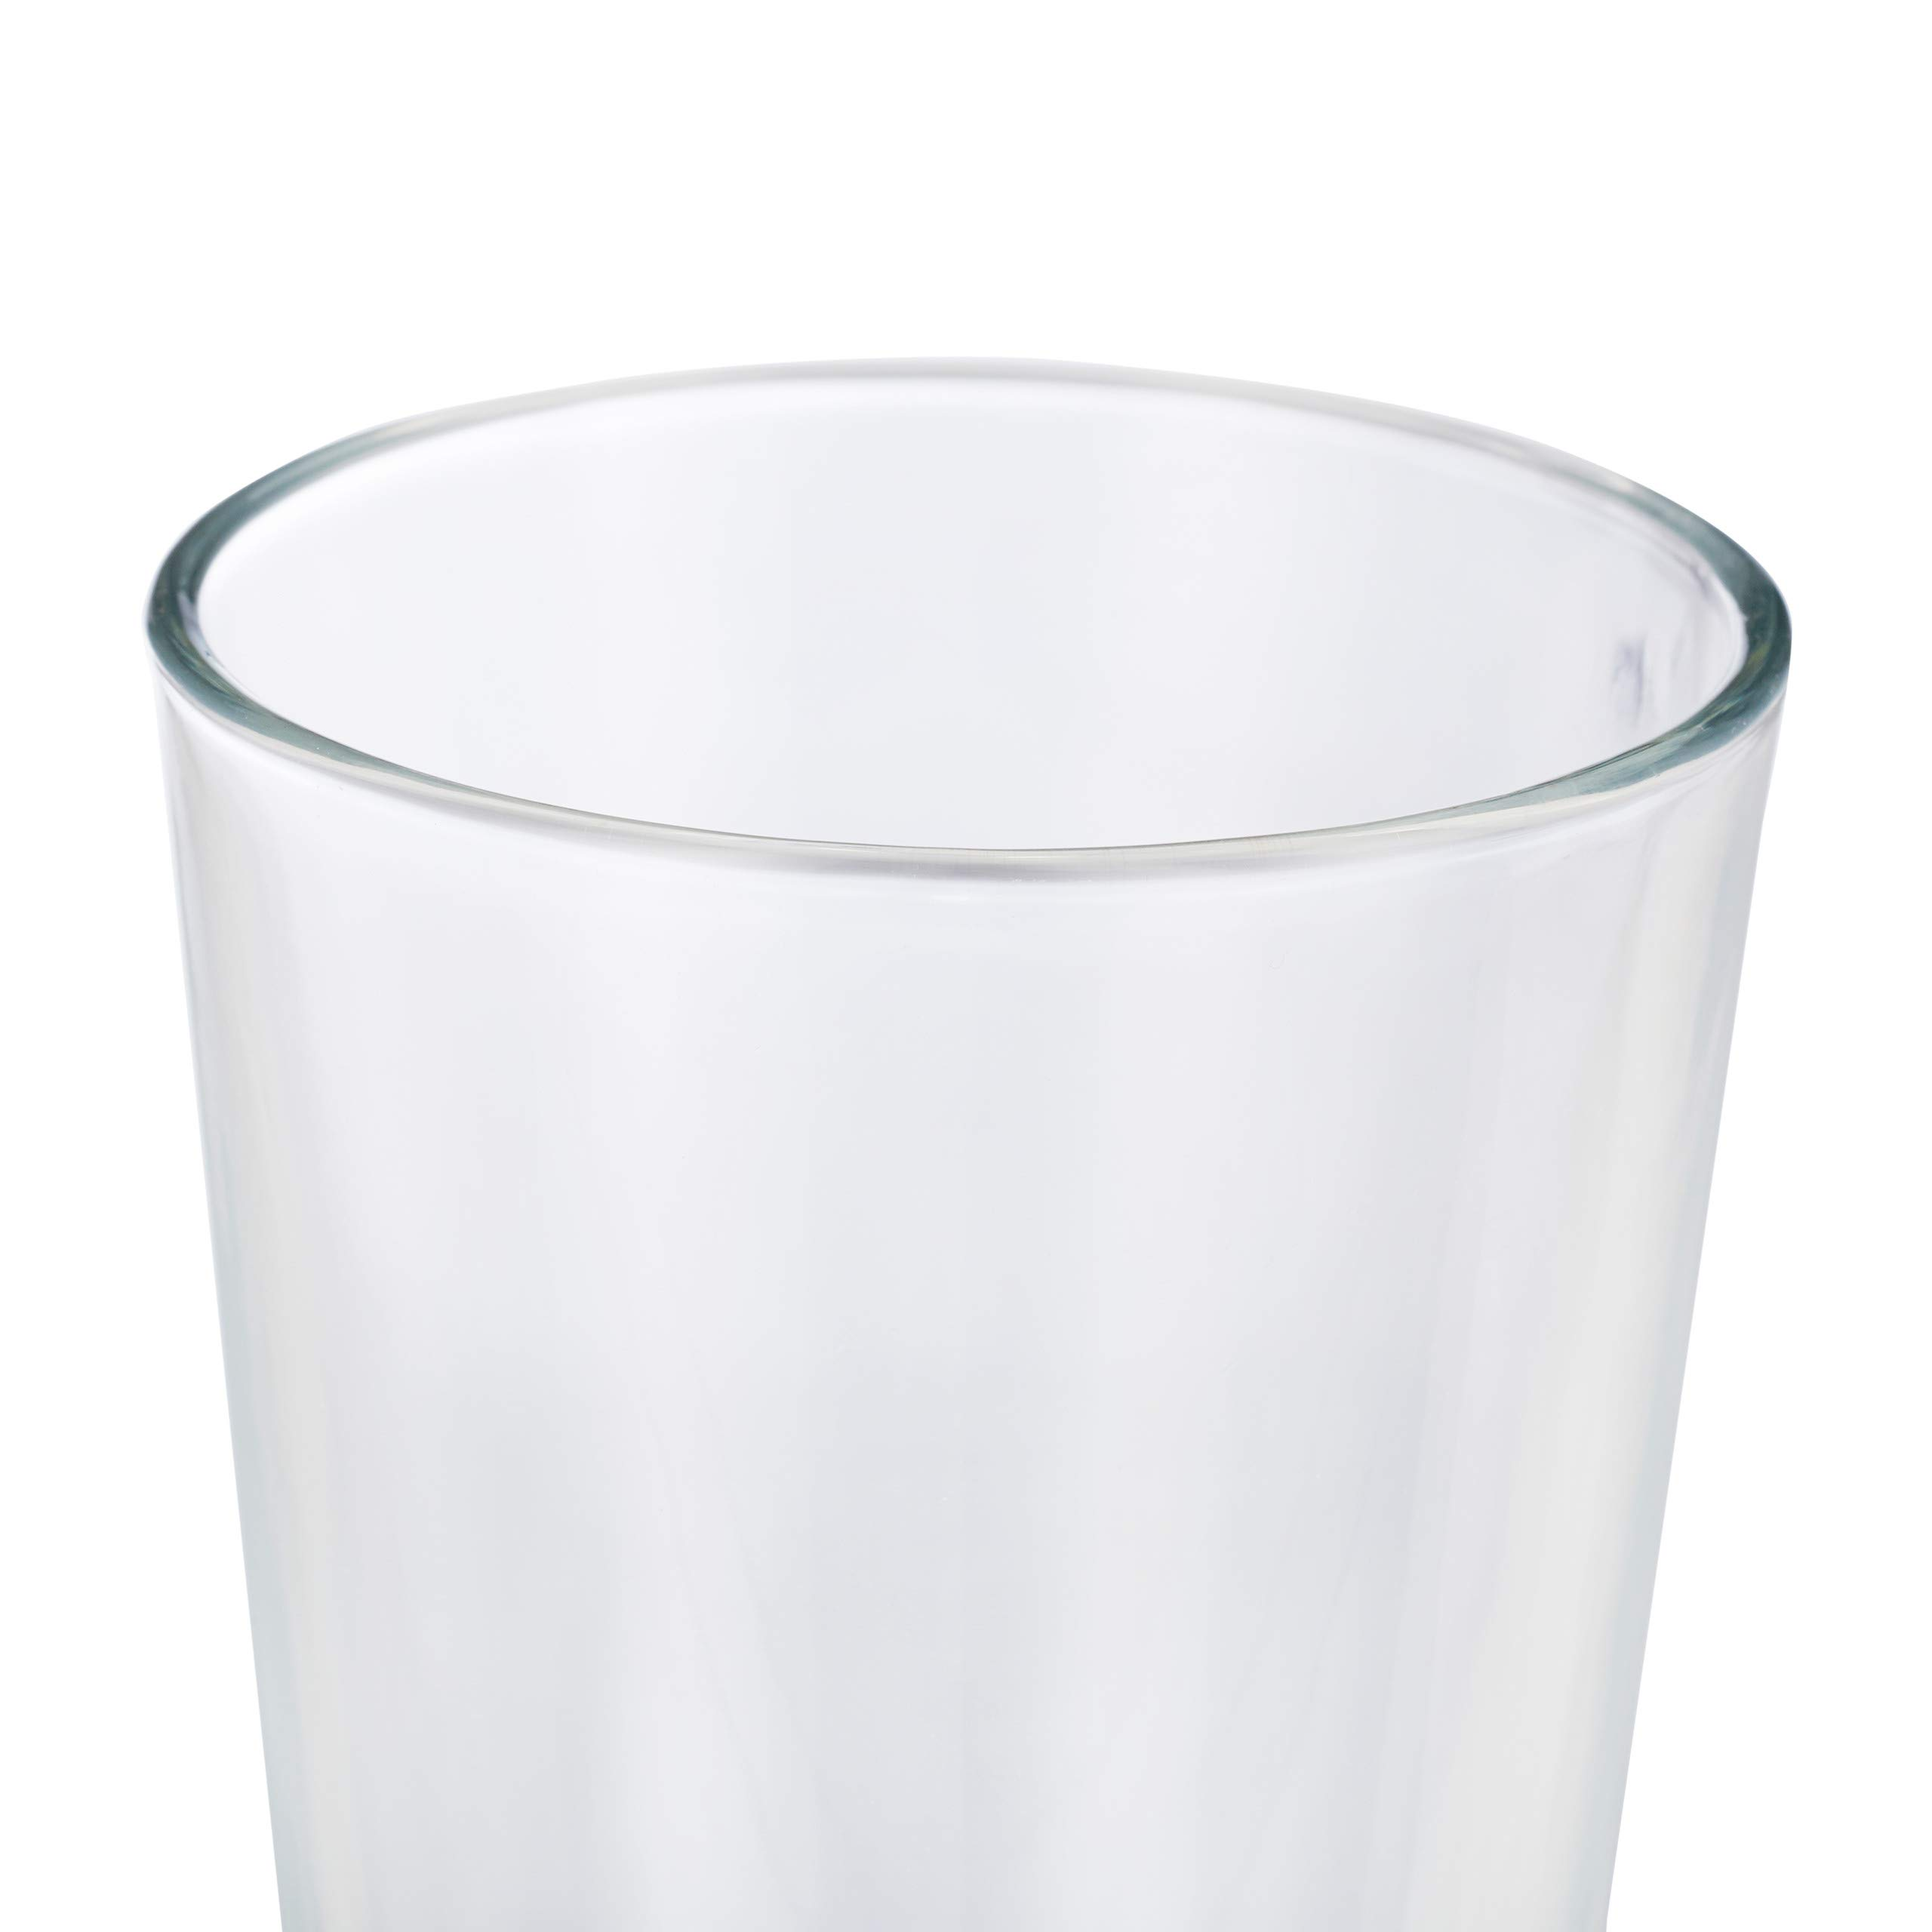 Relaxdays 10023413 Set of 18 Drinking Glasses Thick-Walled Water Glasses Simple Design Dishwasher Safe 500 ml Transparent Glass by Relaxdays (Image #7)